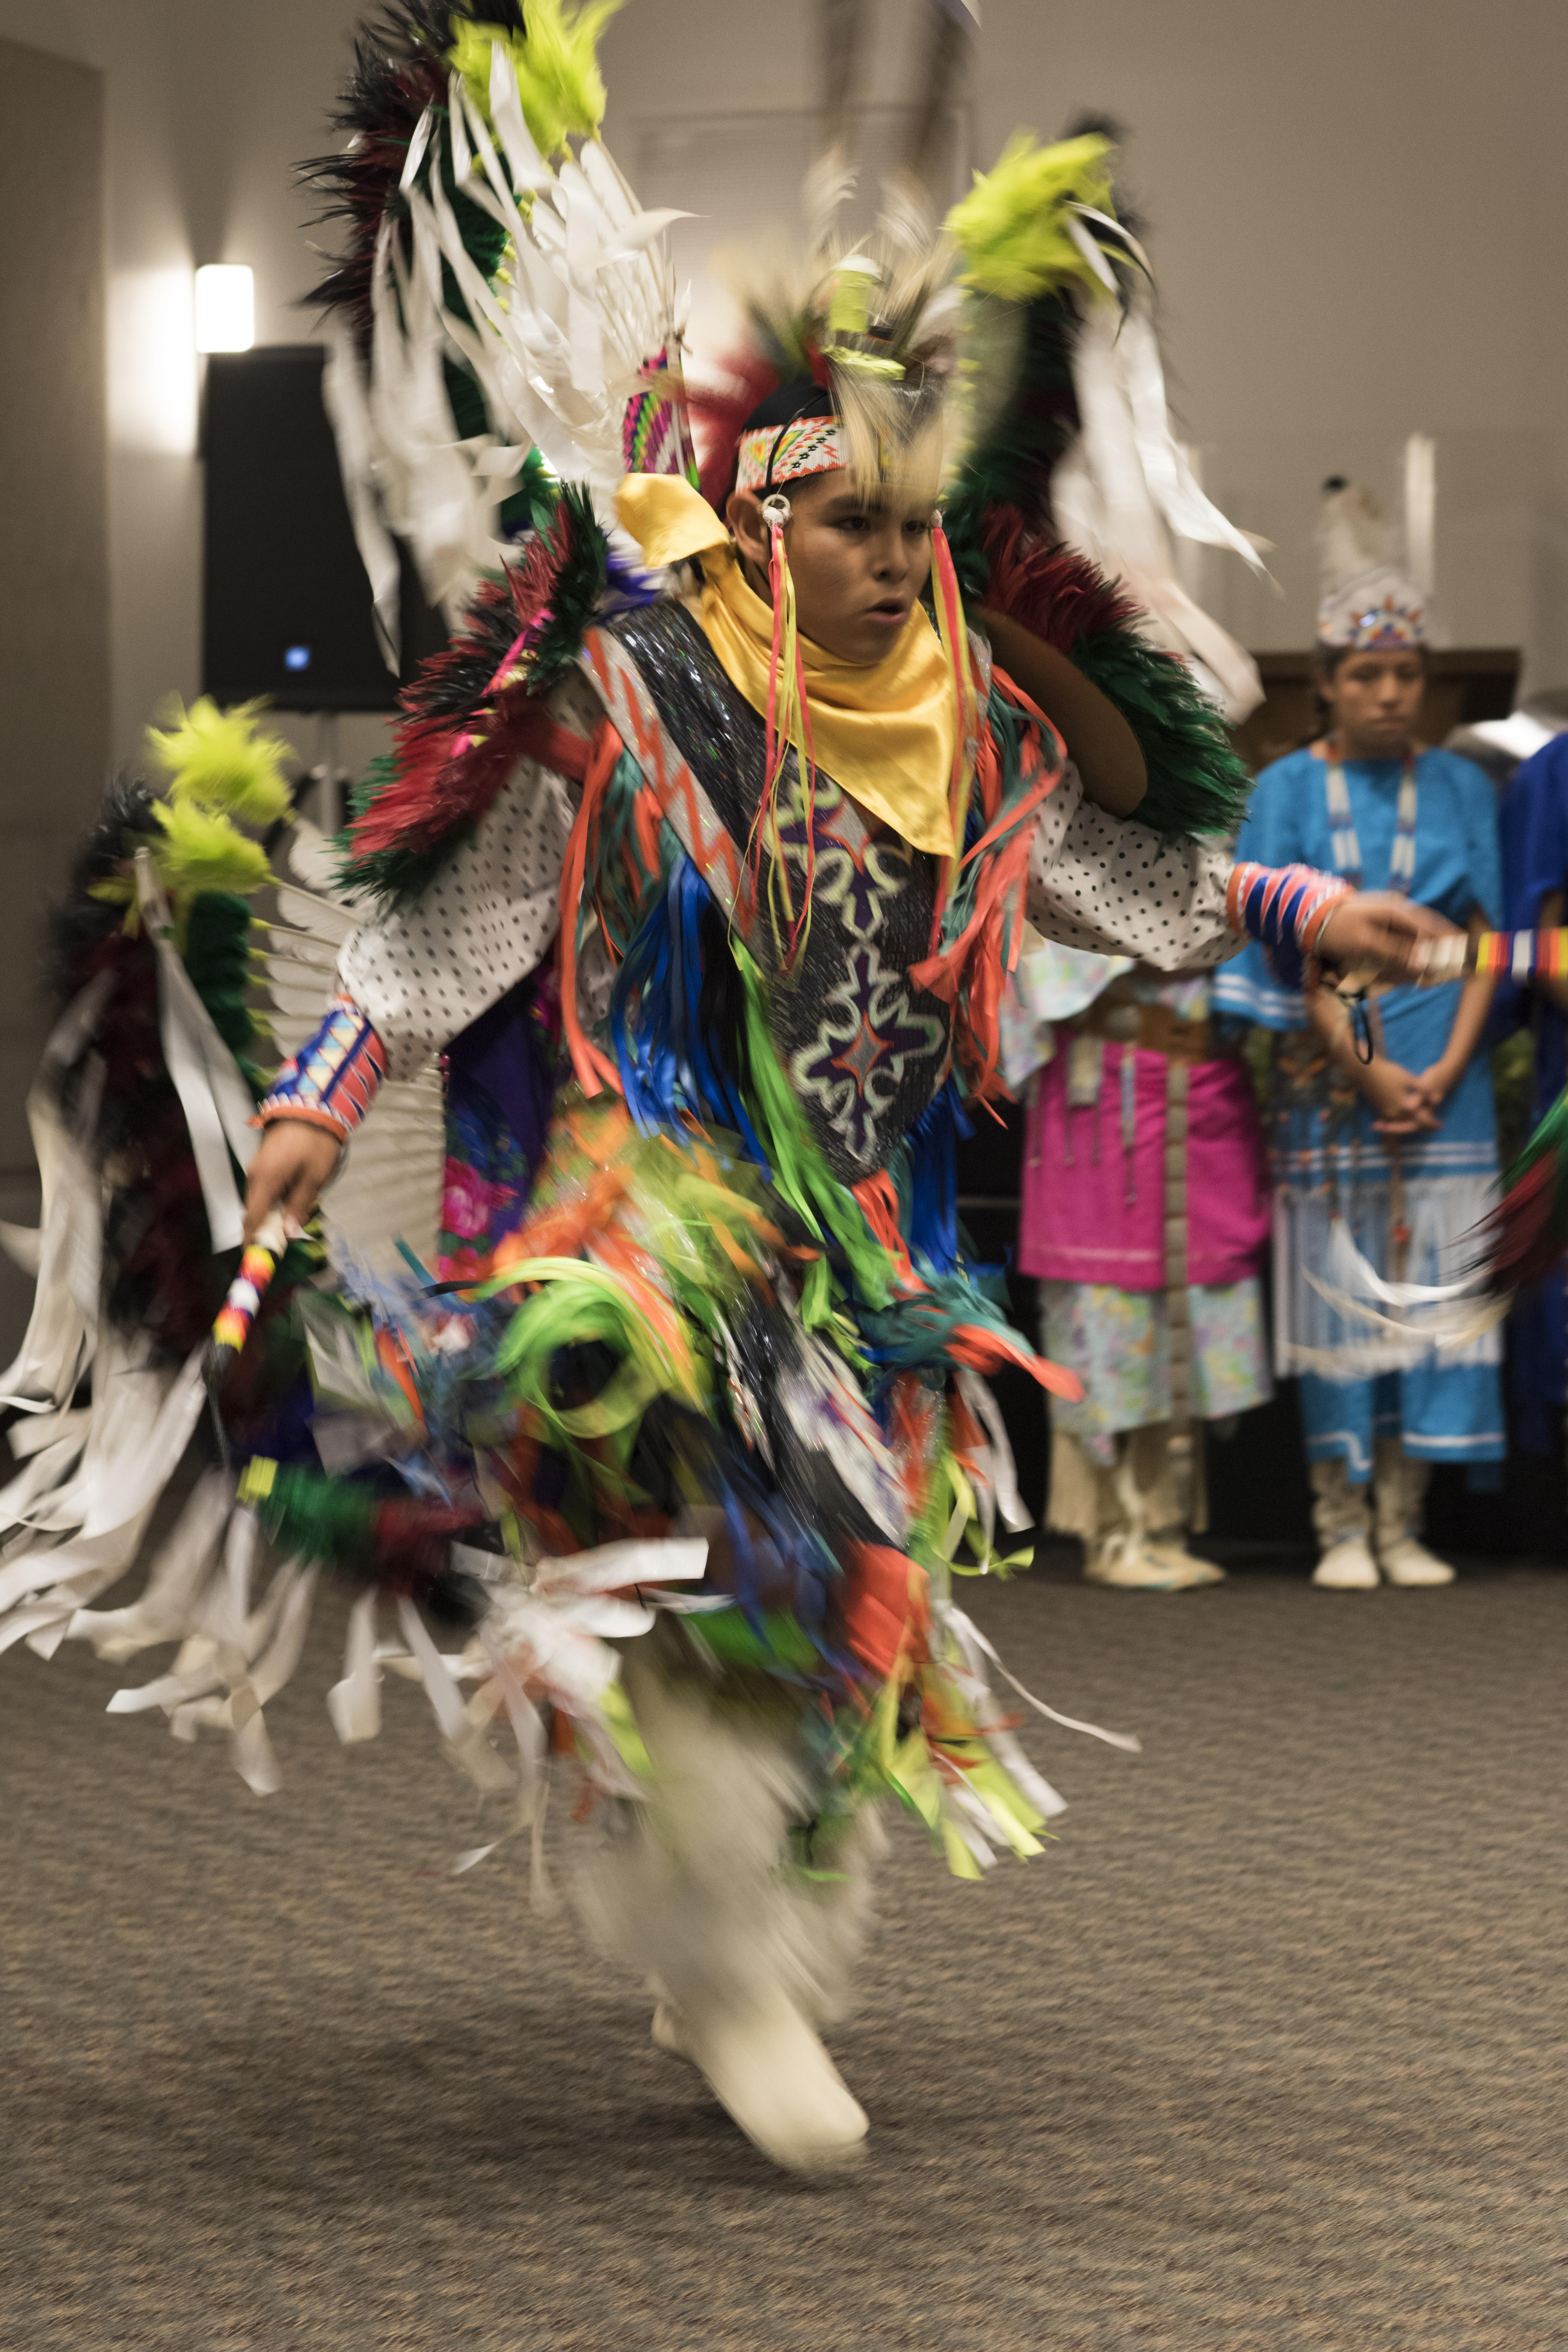 Honoring National American Indian Heritage Month